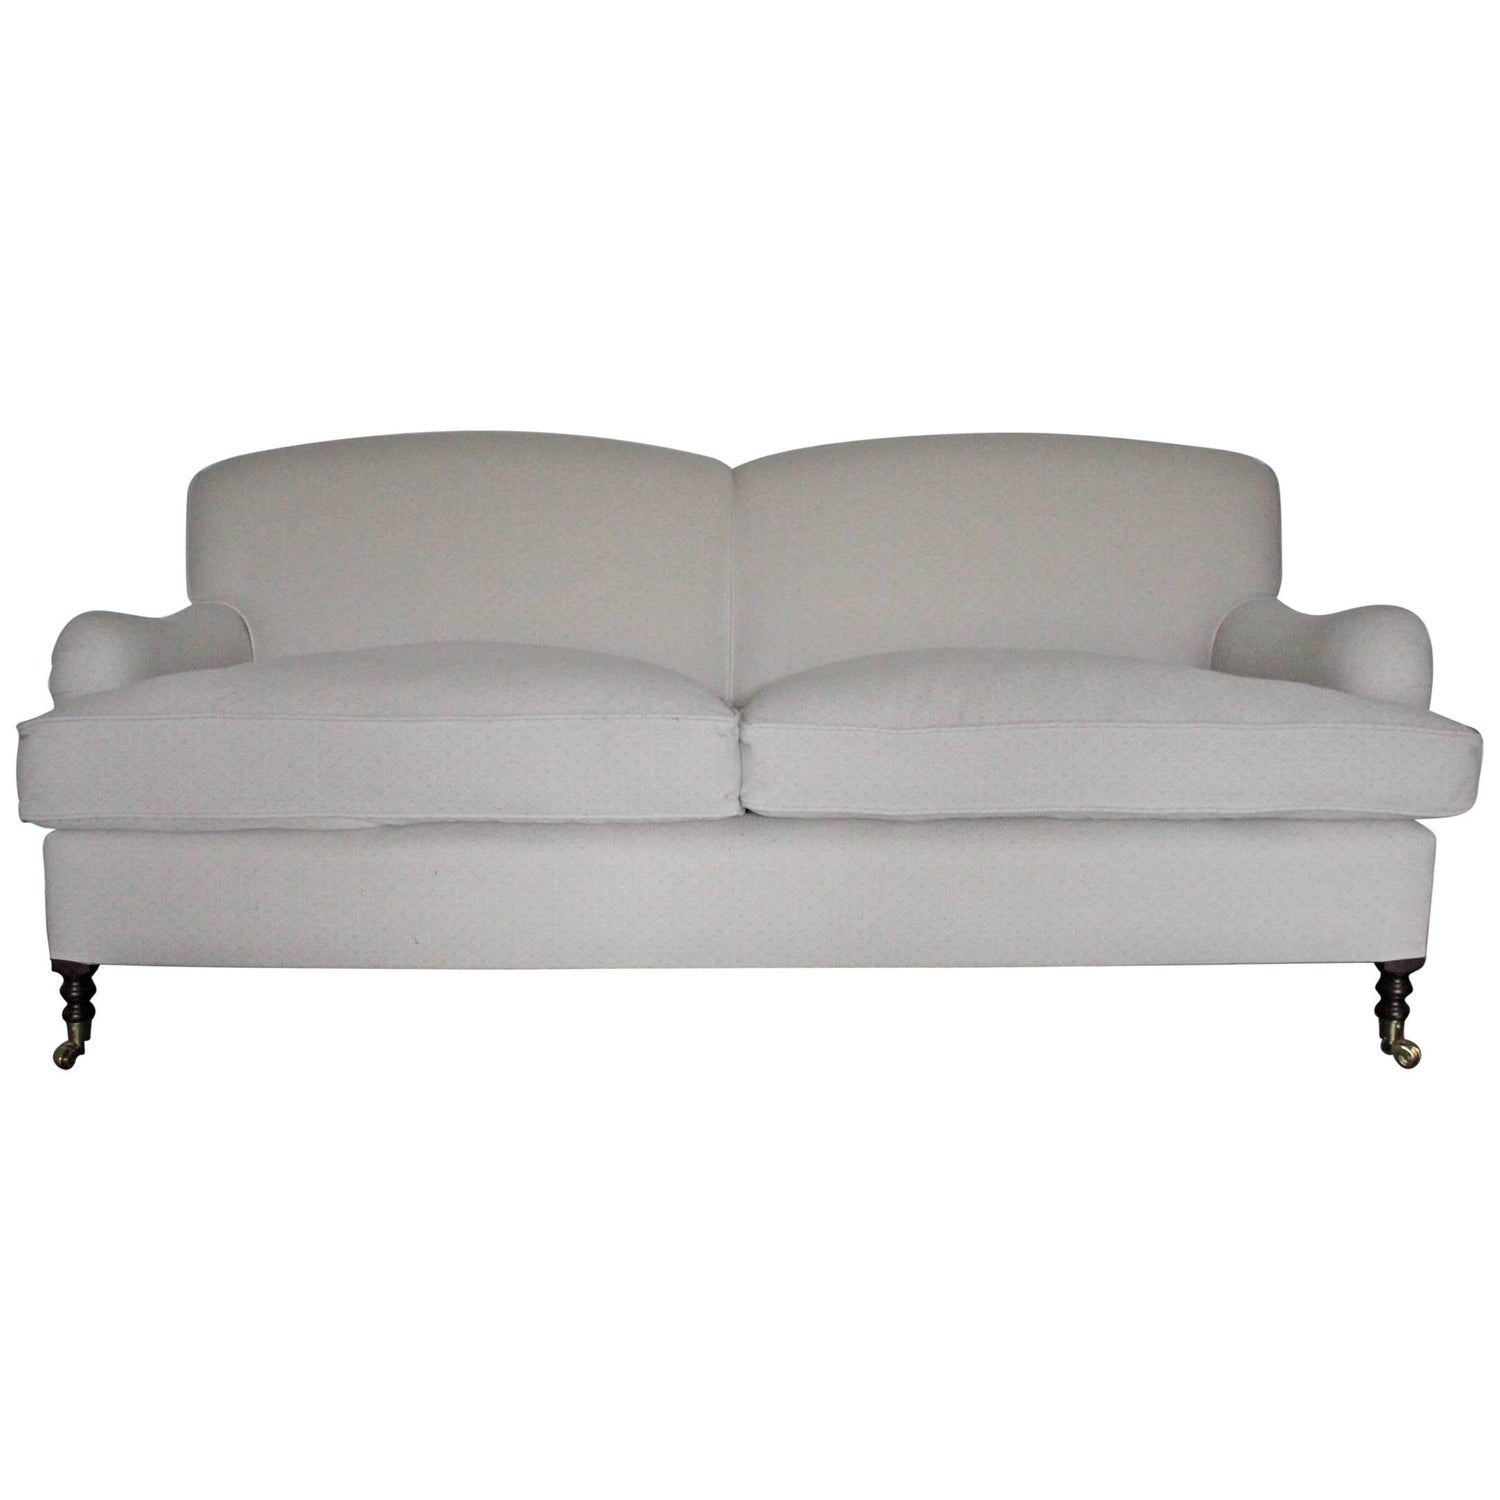 "George Smith Signature ""Standard Arm"" Medium Sofa in Silver Grey"